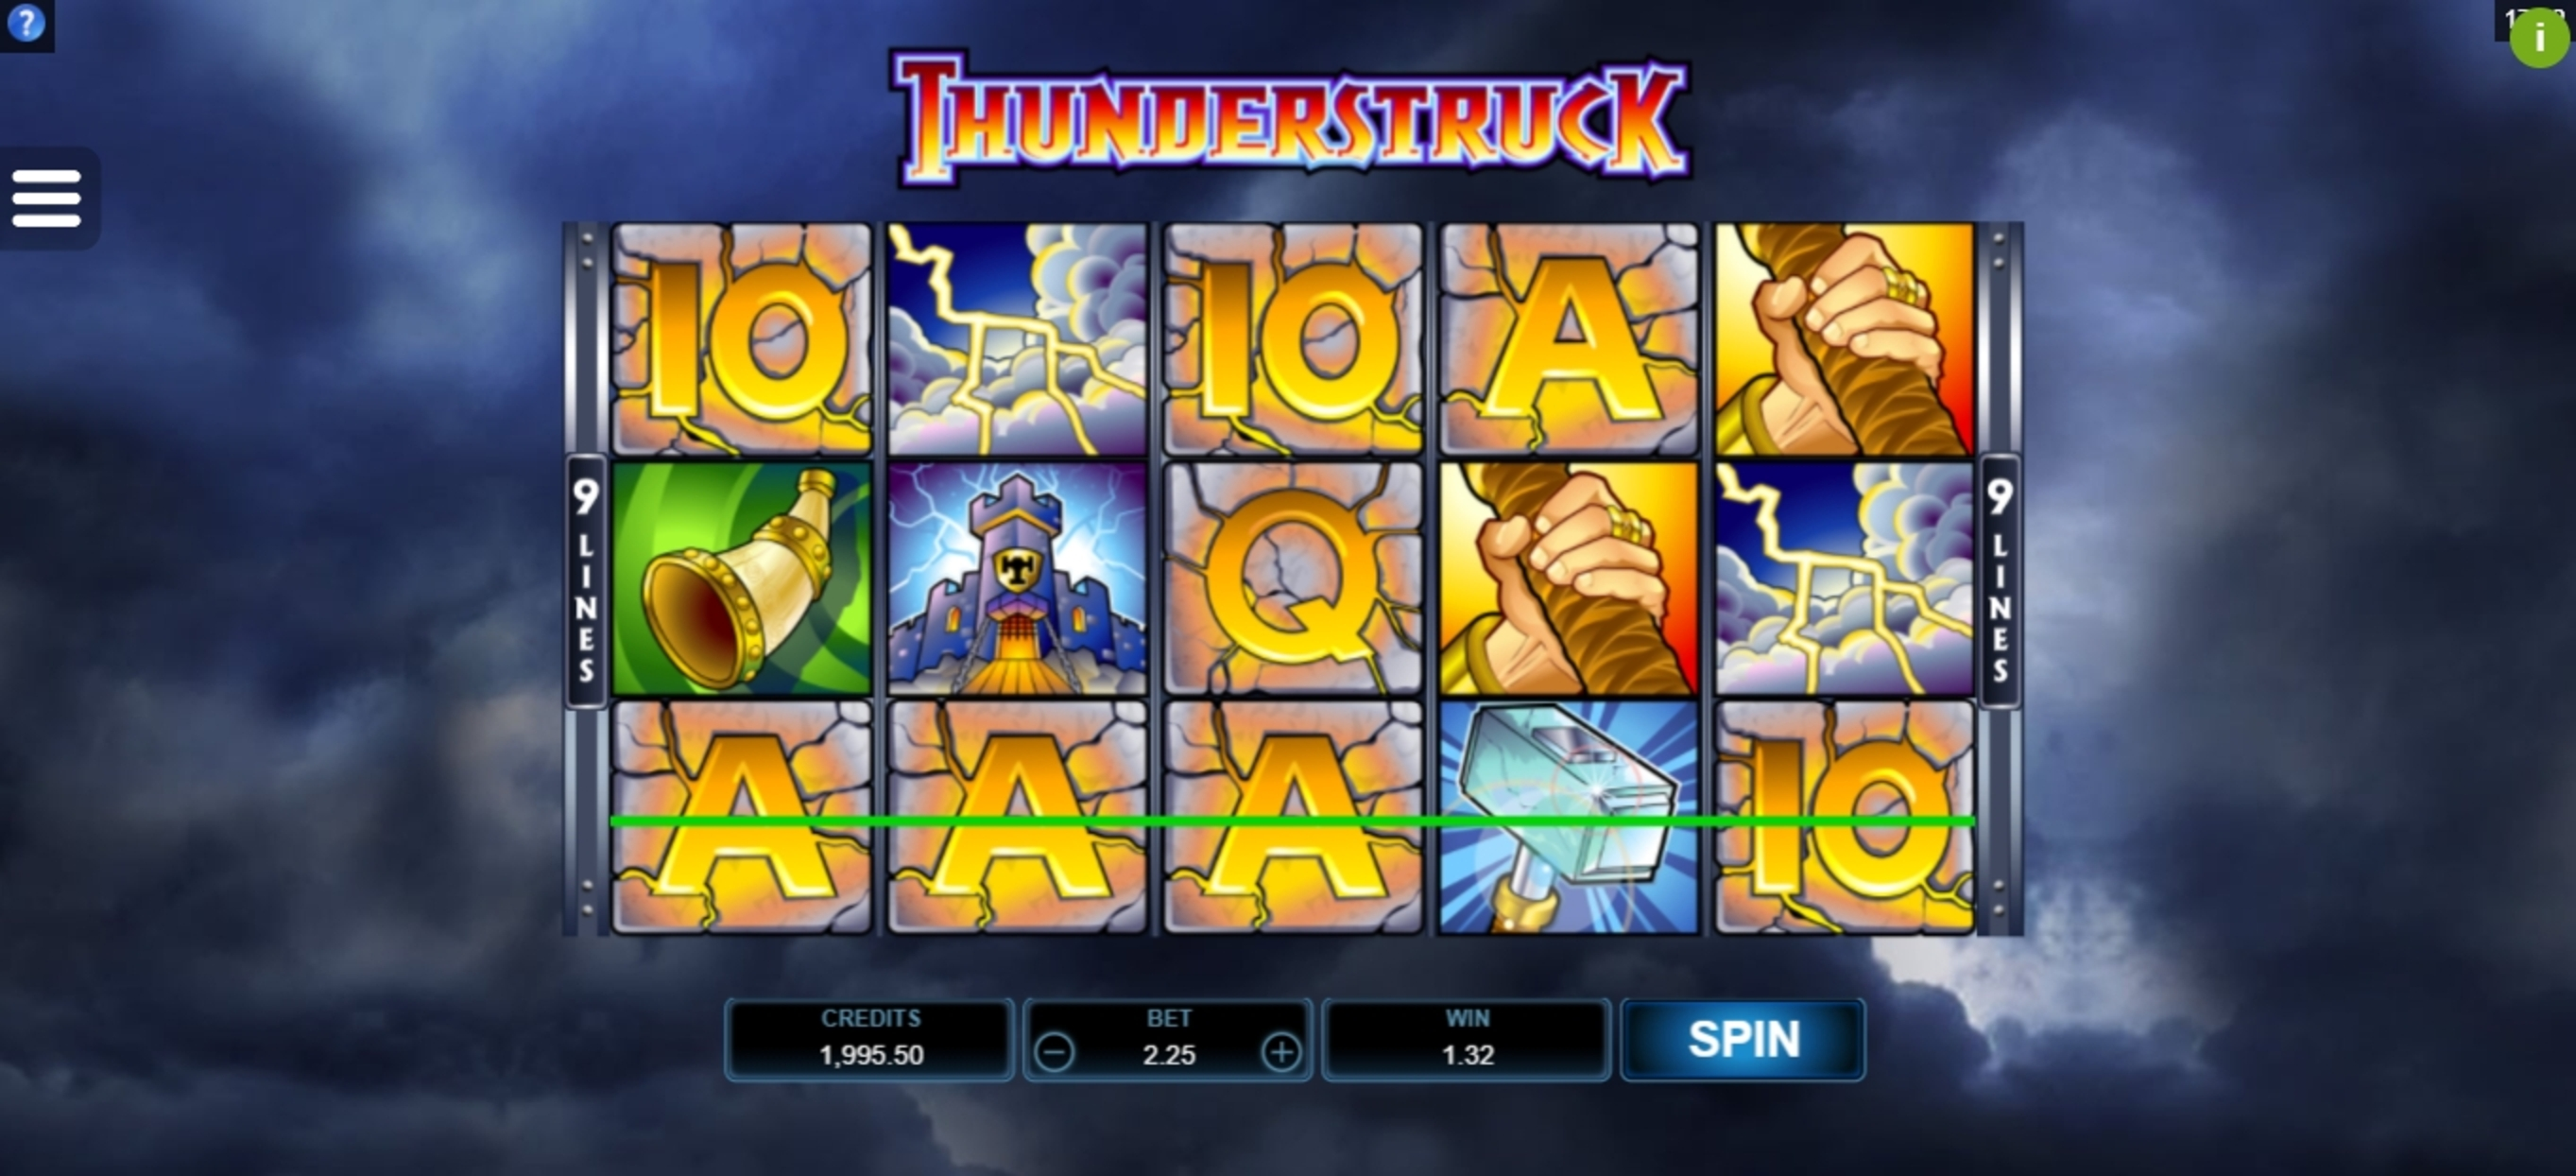 Win Money in Thunderstruck Free Slot Game by Microgaming